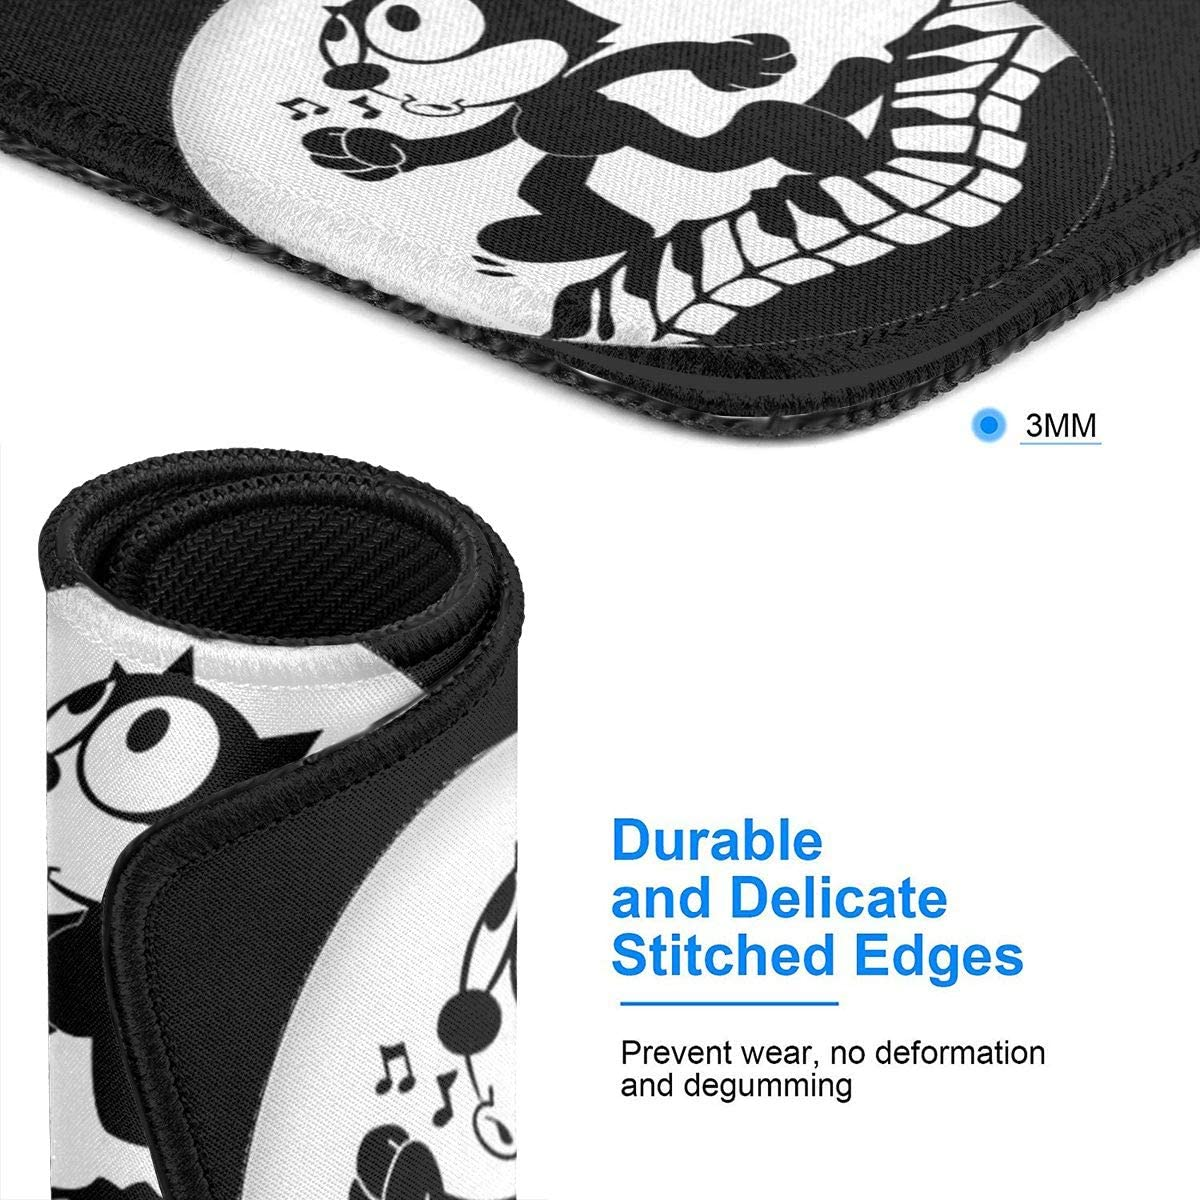 Felix The Cat Comfortable and Wearable Rubber Computer Mouse Pad Precision Locking Non-Slip for Laptop Office Home Game